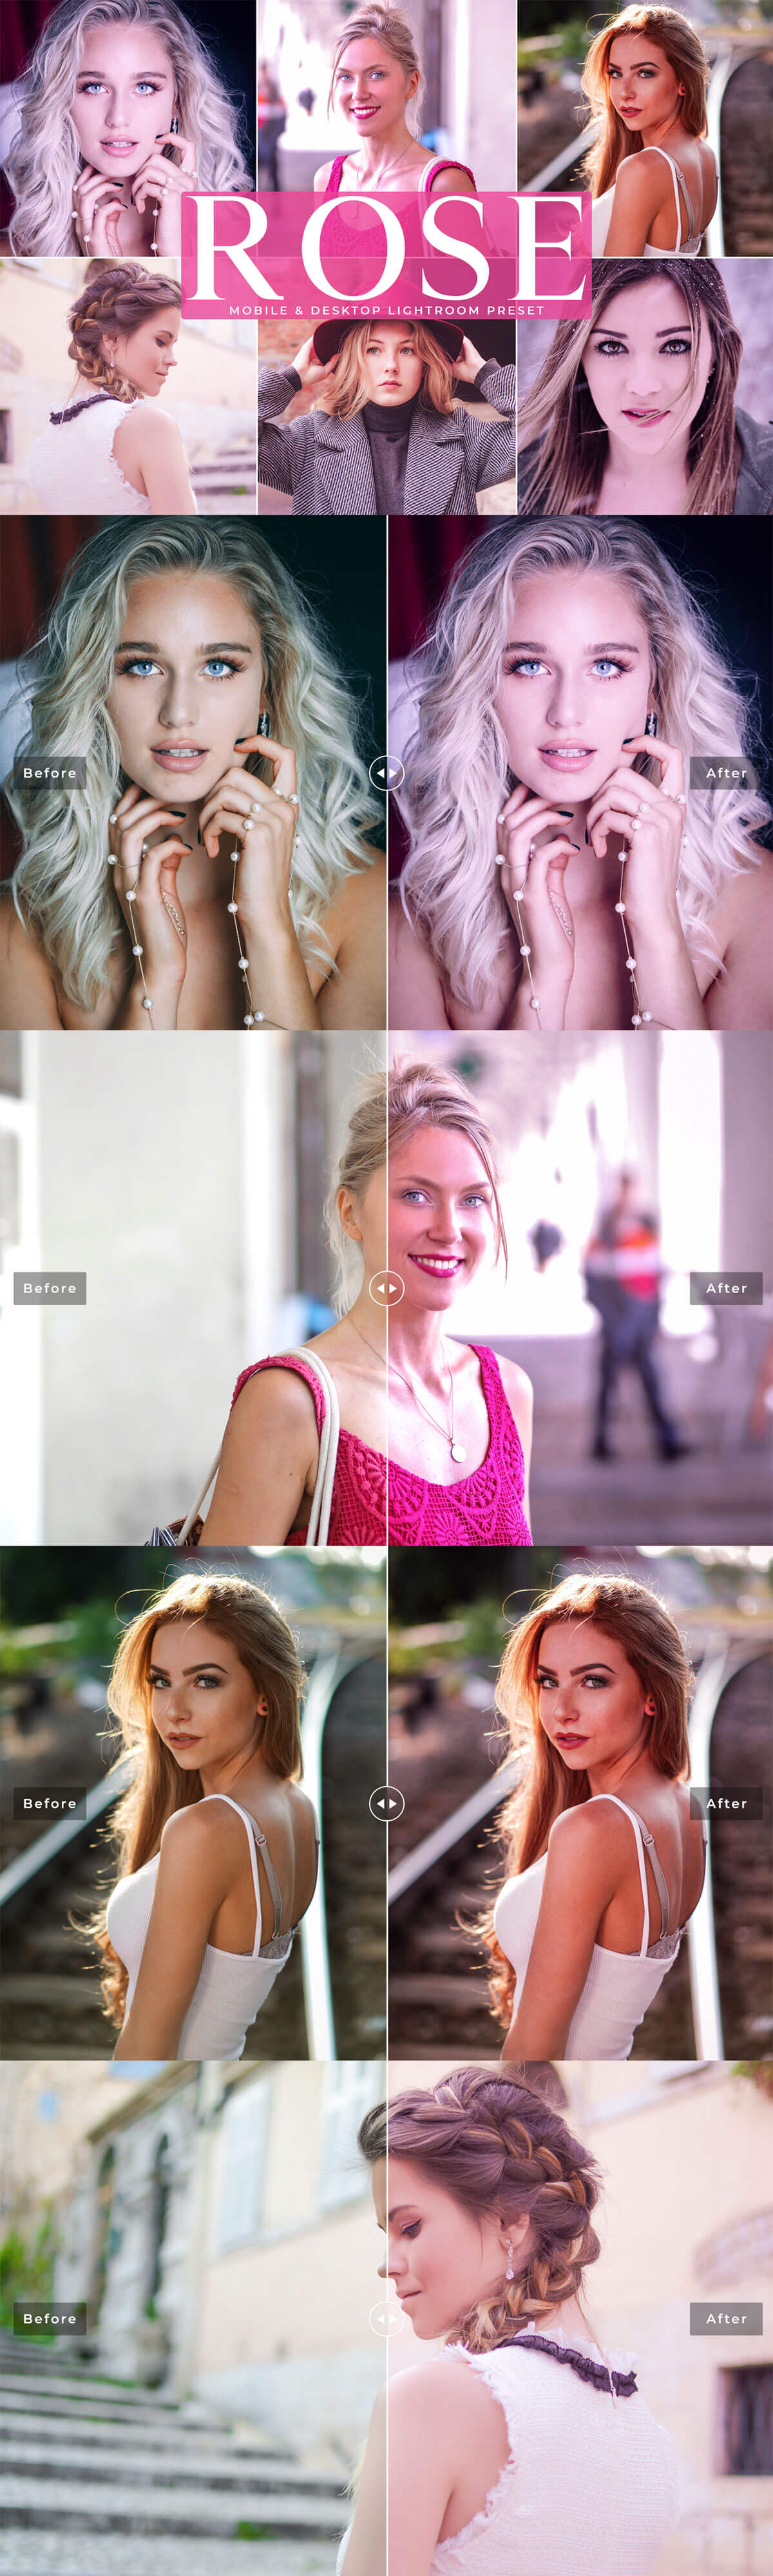 Free Rose Mobile Lightroom Presets